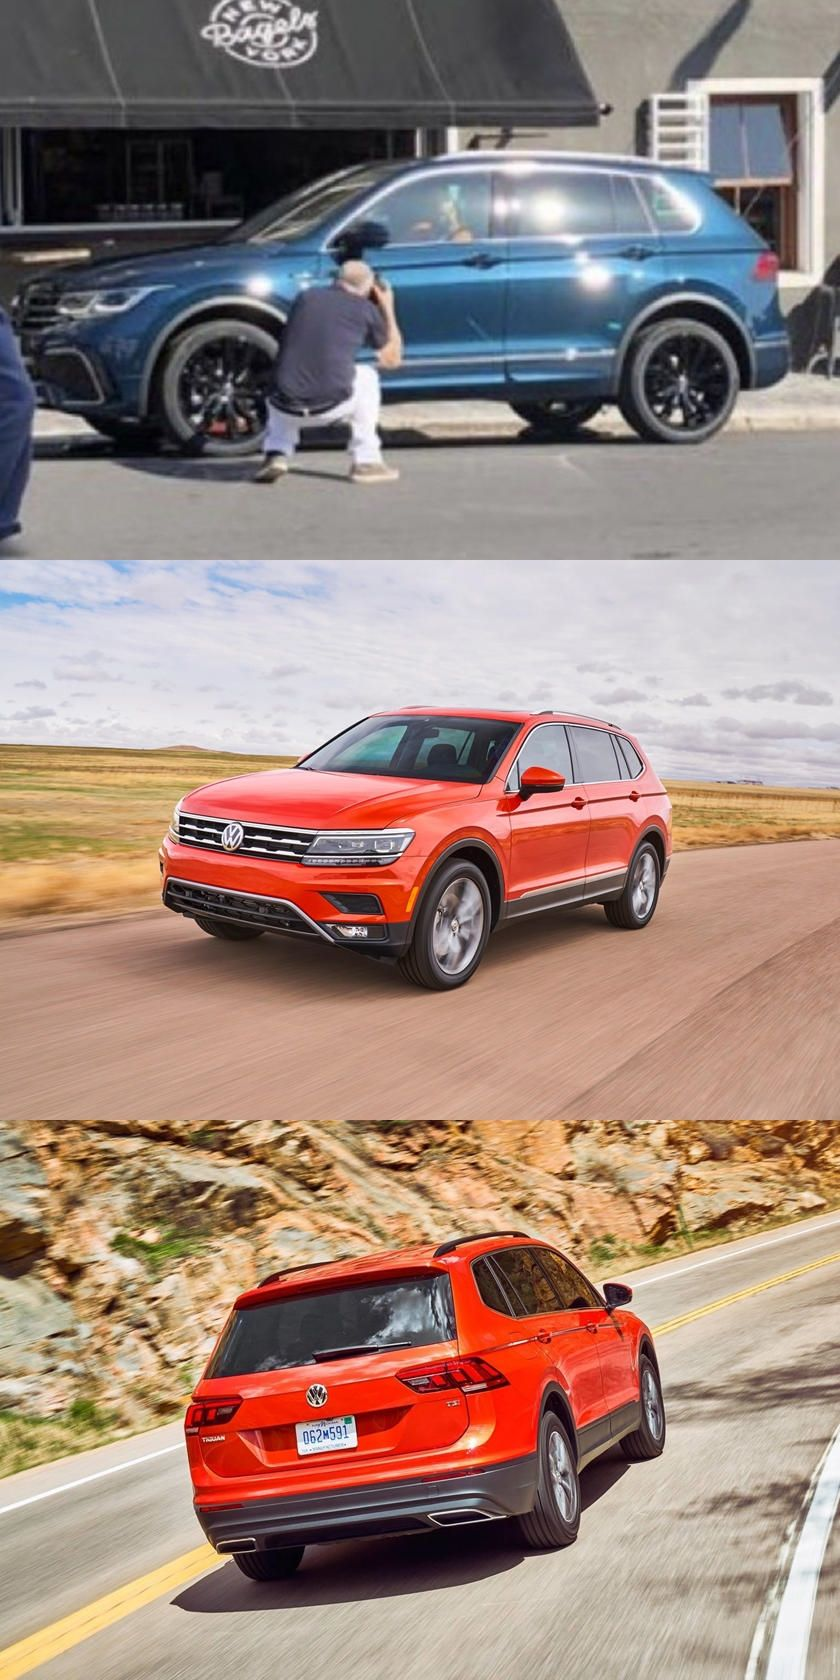 This Is The 2021 Volkswagen Tiguan Before You Re Supposed To See It The Upcoming Volkswagen Tiguan Facelift H In 2020 Volkswagen Infotainment System Geneva Motor Show